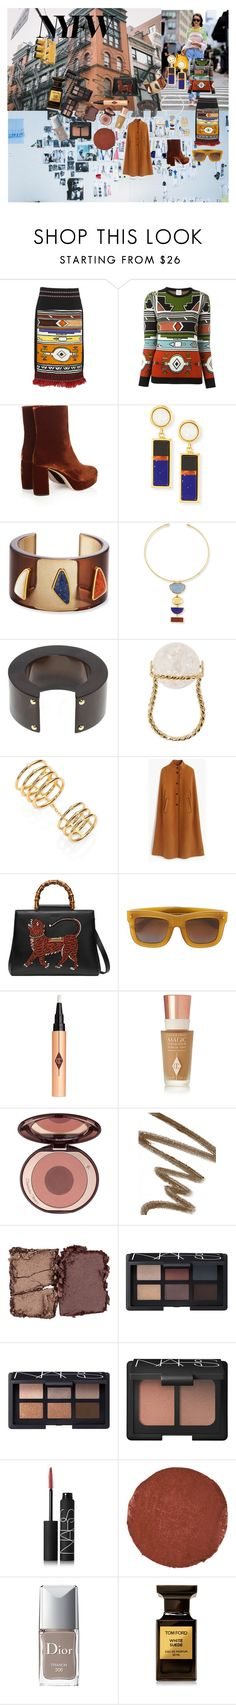 """""""Runway to Reality"""" by atho-12345 on Polyvore featuring Forevermark, Stella Jean, Miu Miu, Lizzie Fortunato, Aurélie Bidermann, Elizabeth and James, J.Crew, Gucci, Grey Ant and Charlotte Tilbury"""